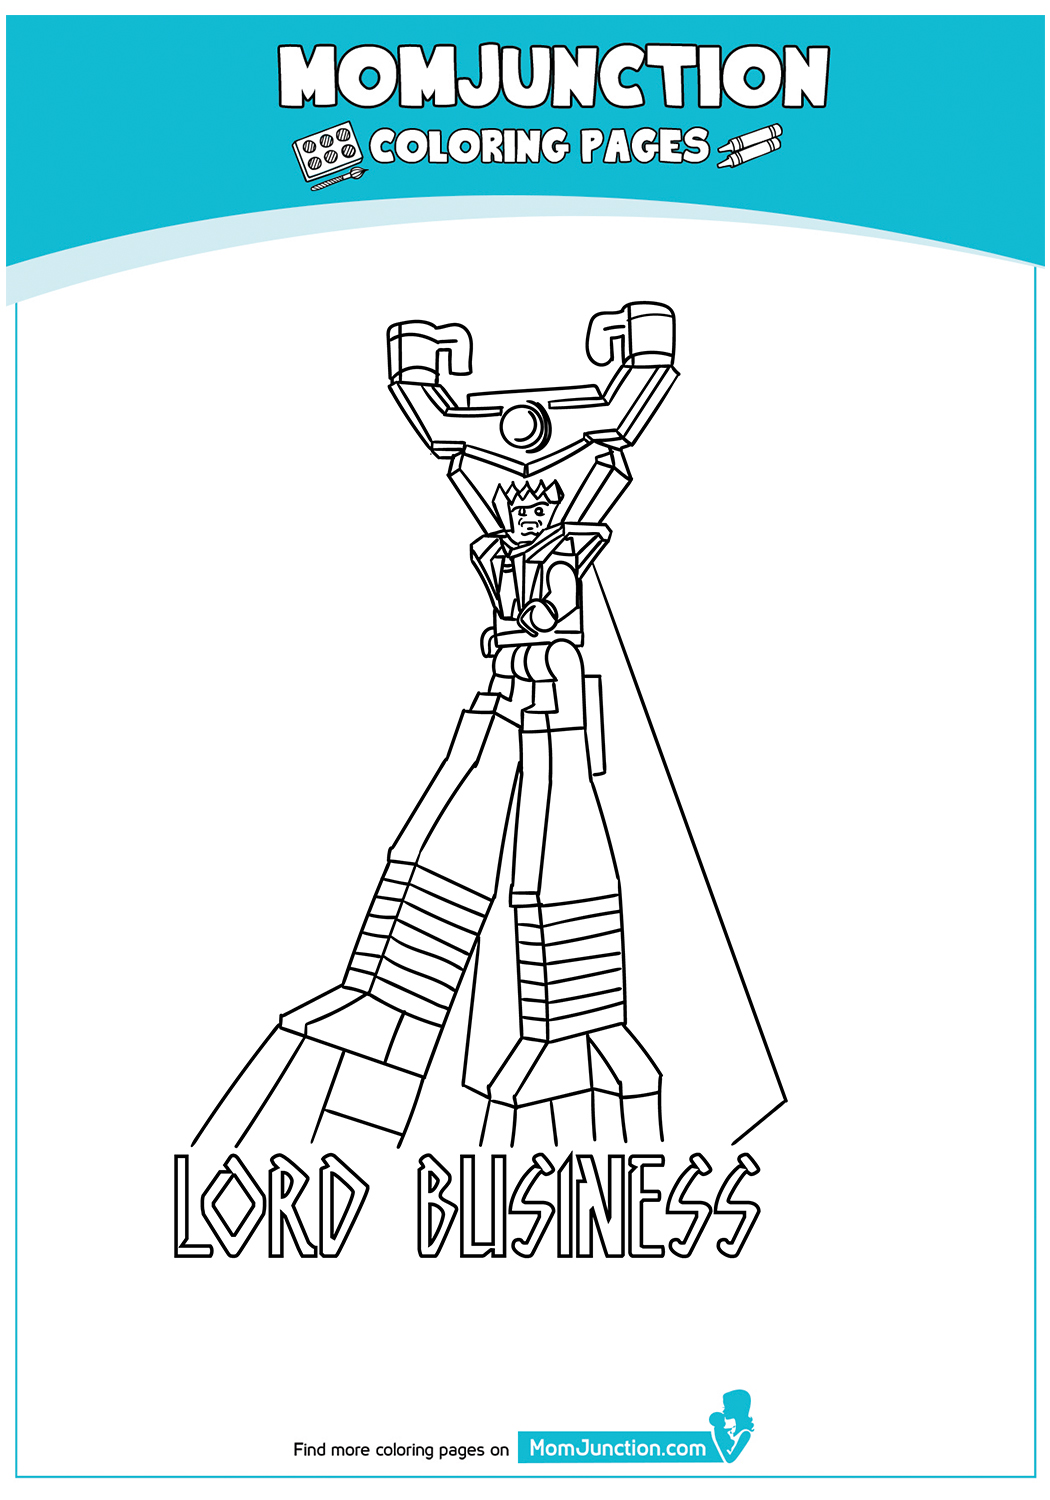 Lord-Business-17